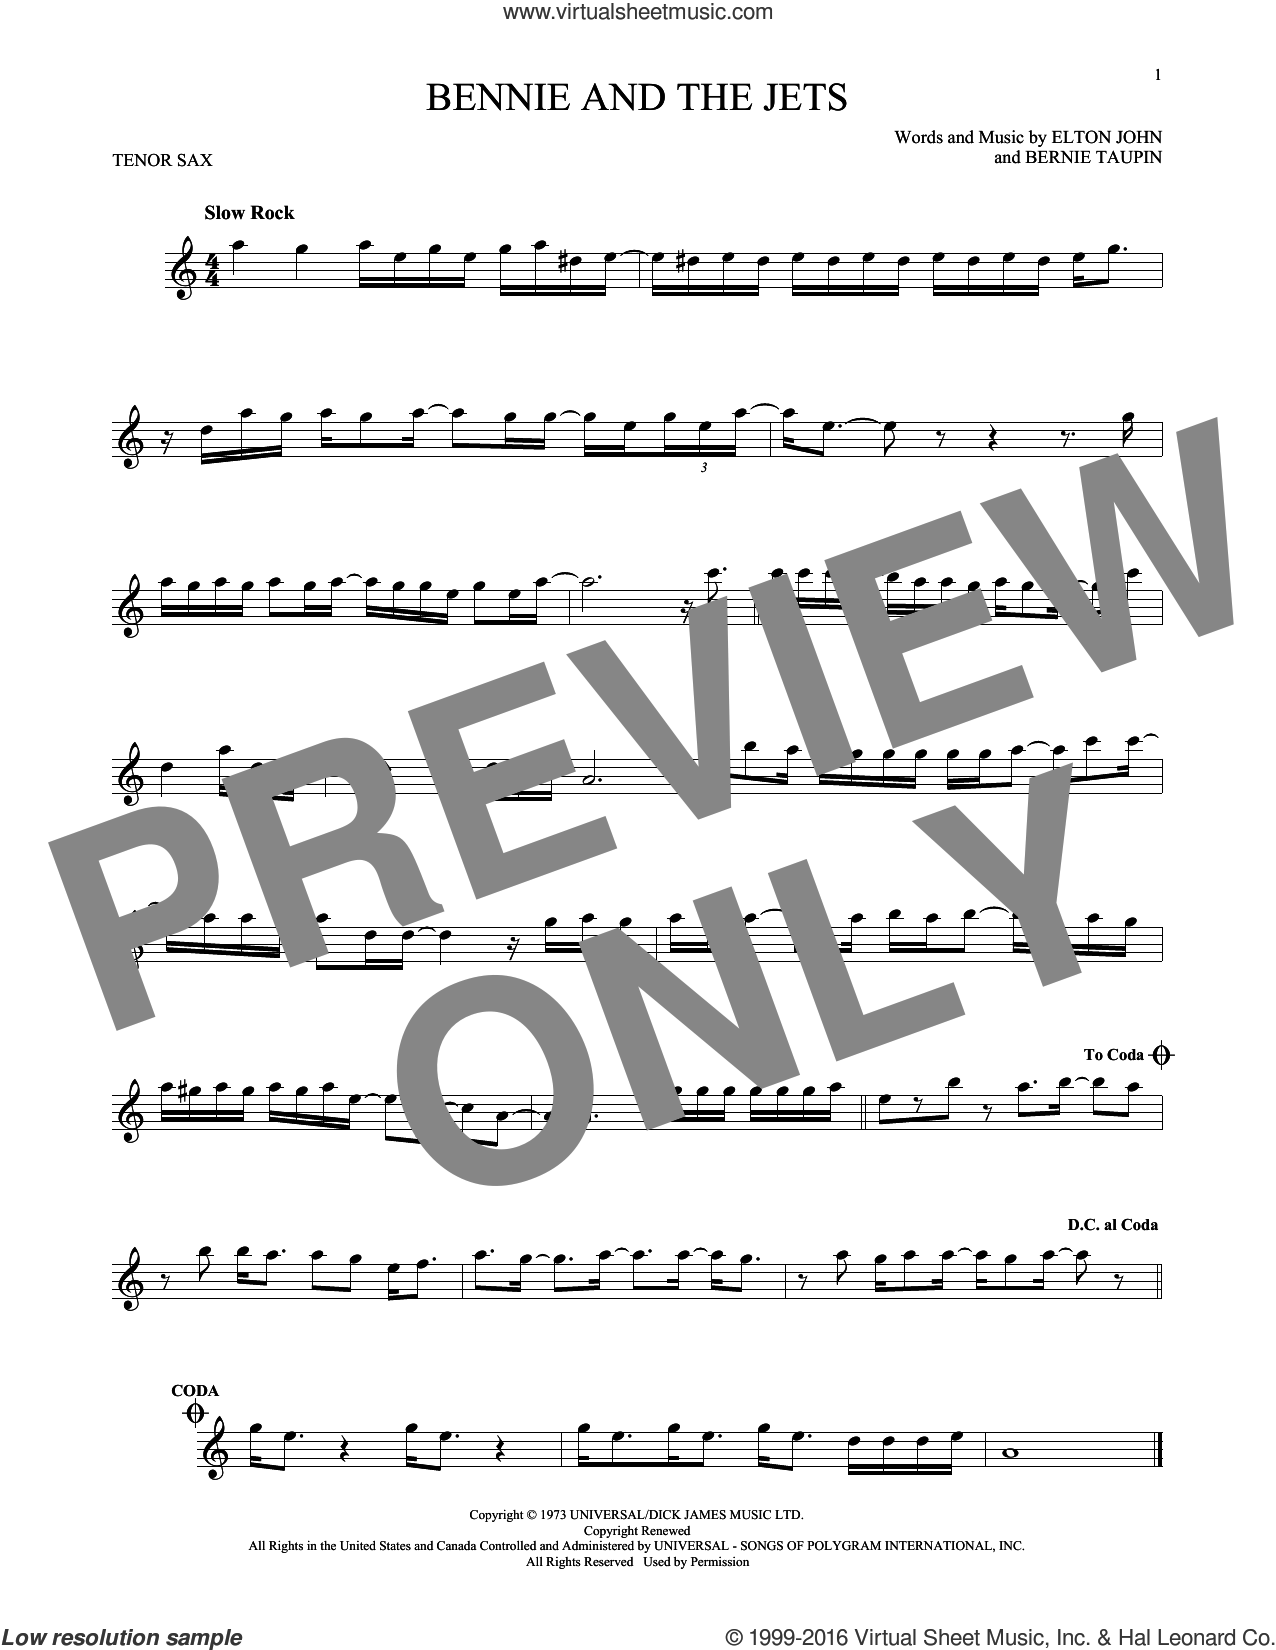 Bennie And The Jets sheet music for tenor saxophone solo by Elton John and Bernie Taupin, intermediate skill level